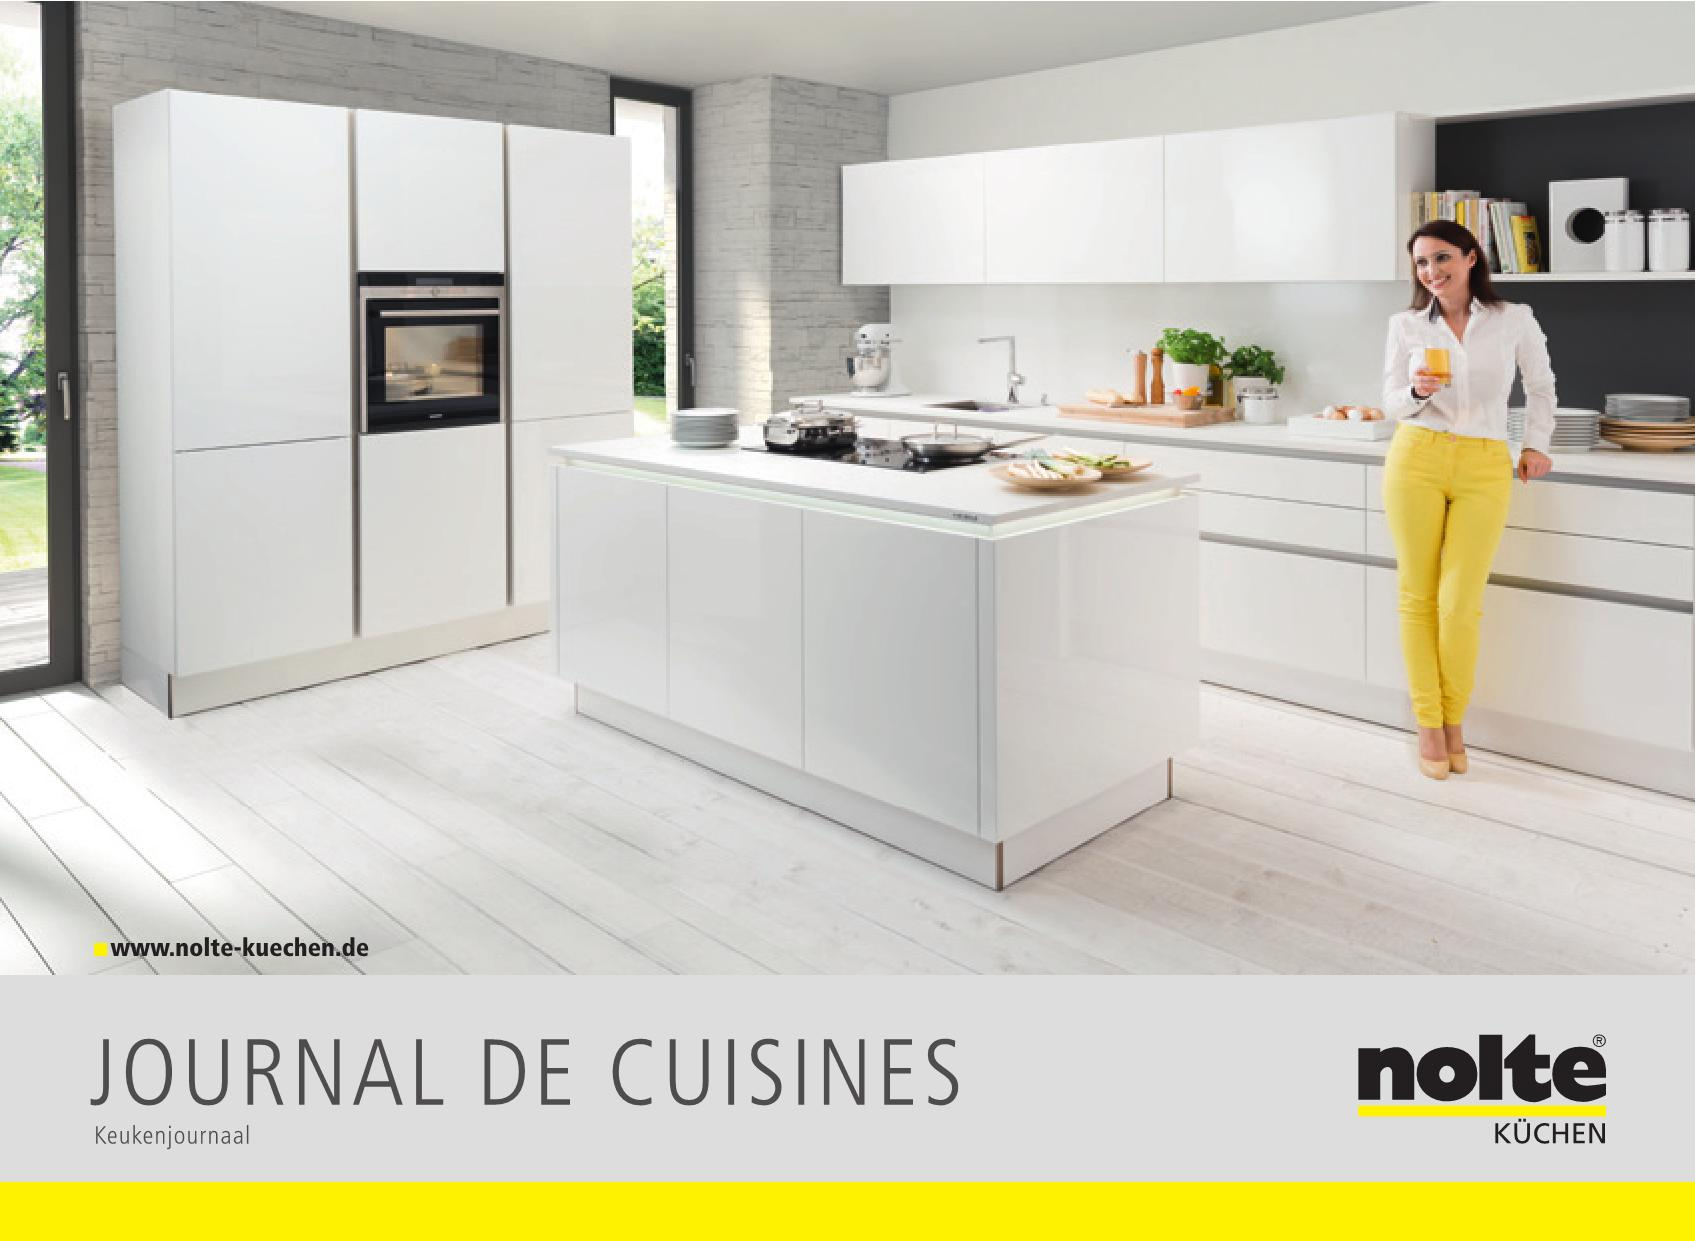 Alno Küchen Oder Nolte Nolte Kitchens Catalogue Kitchen Appliances Tips And Review